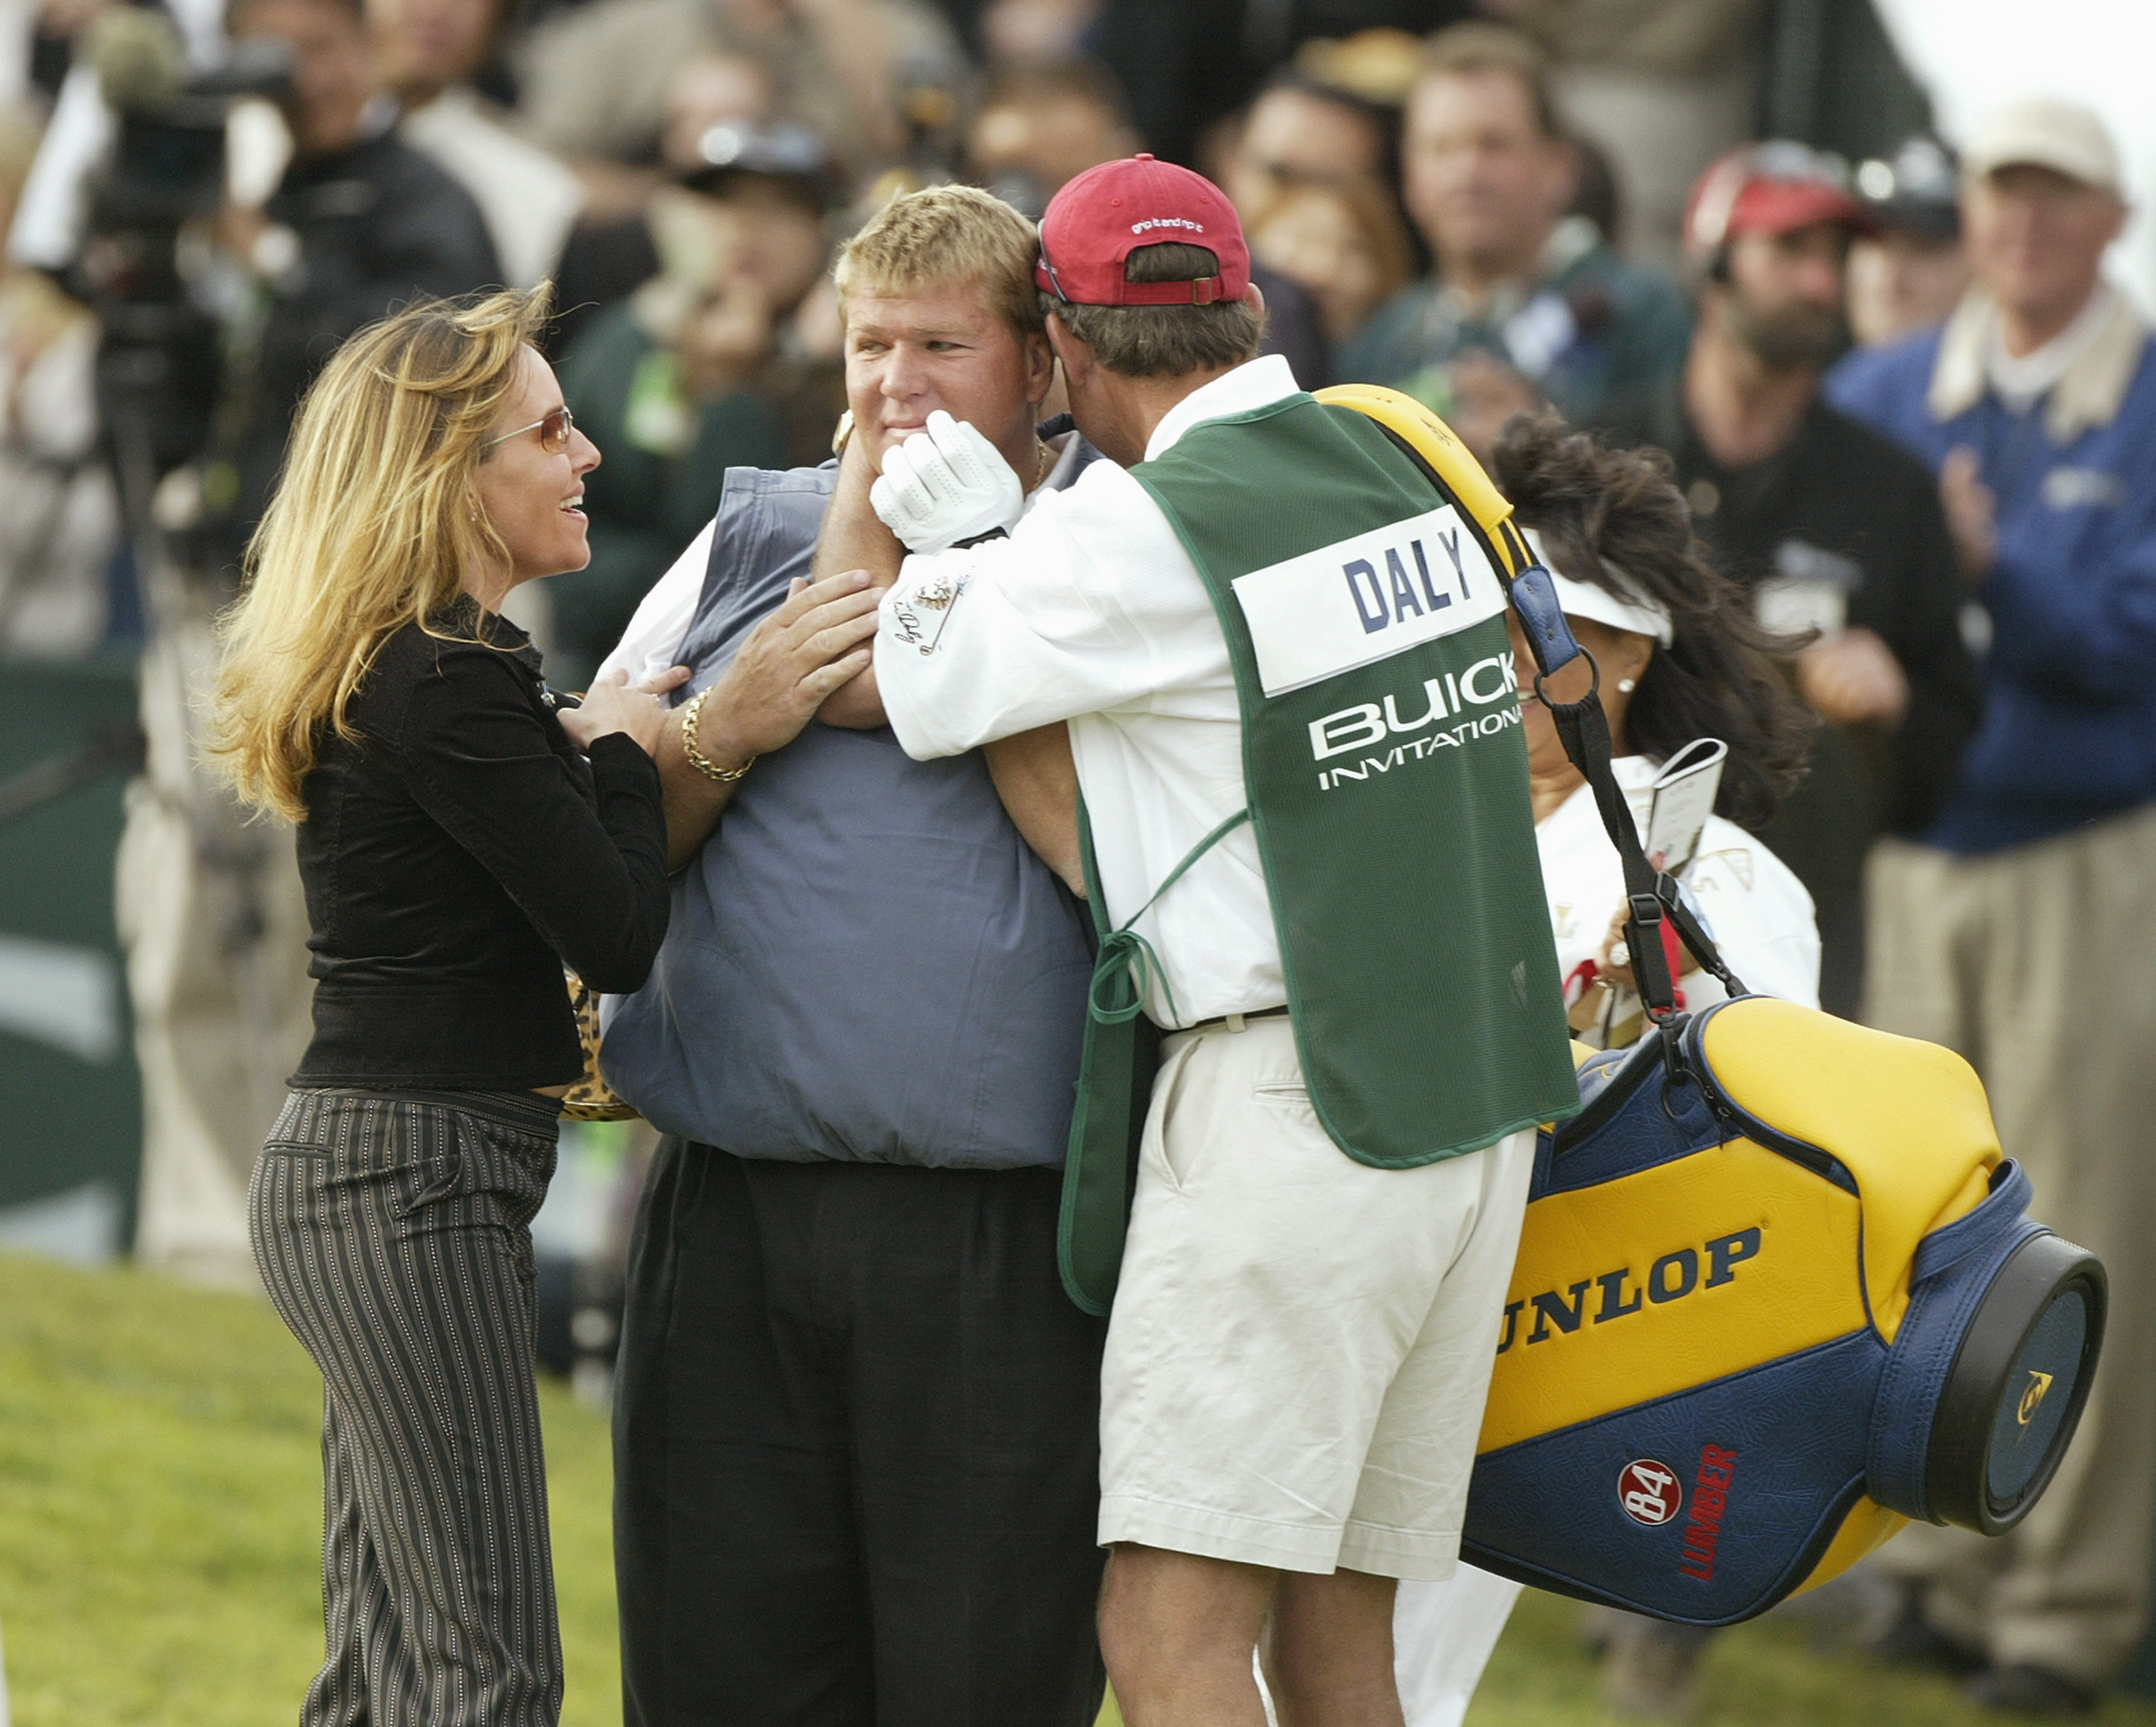 John Daly with his wife Sherrie Daly and caddie after winning the 2004 Buick Invitational